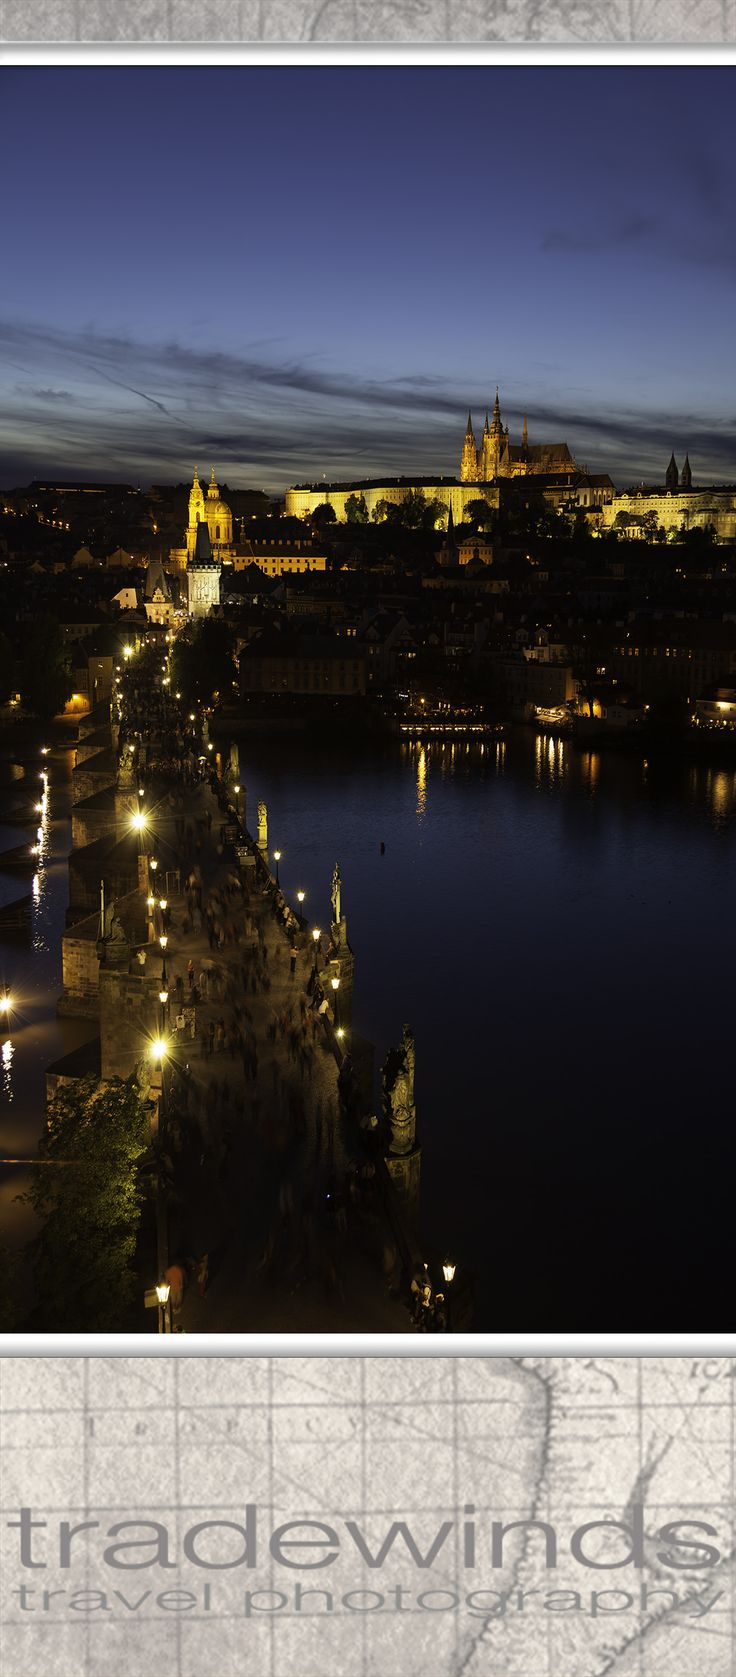 Charles bridge at night, old town Prague, Czech Republic.